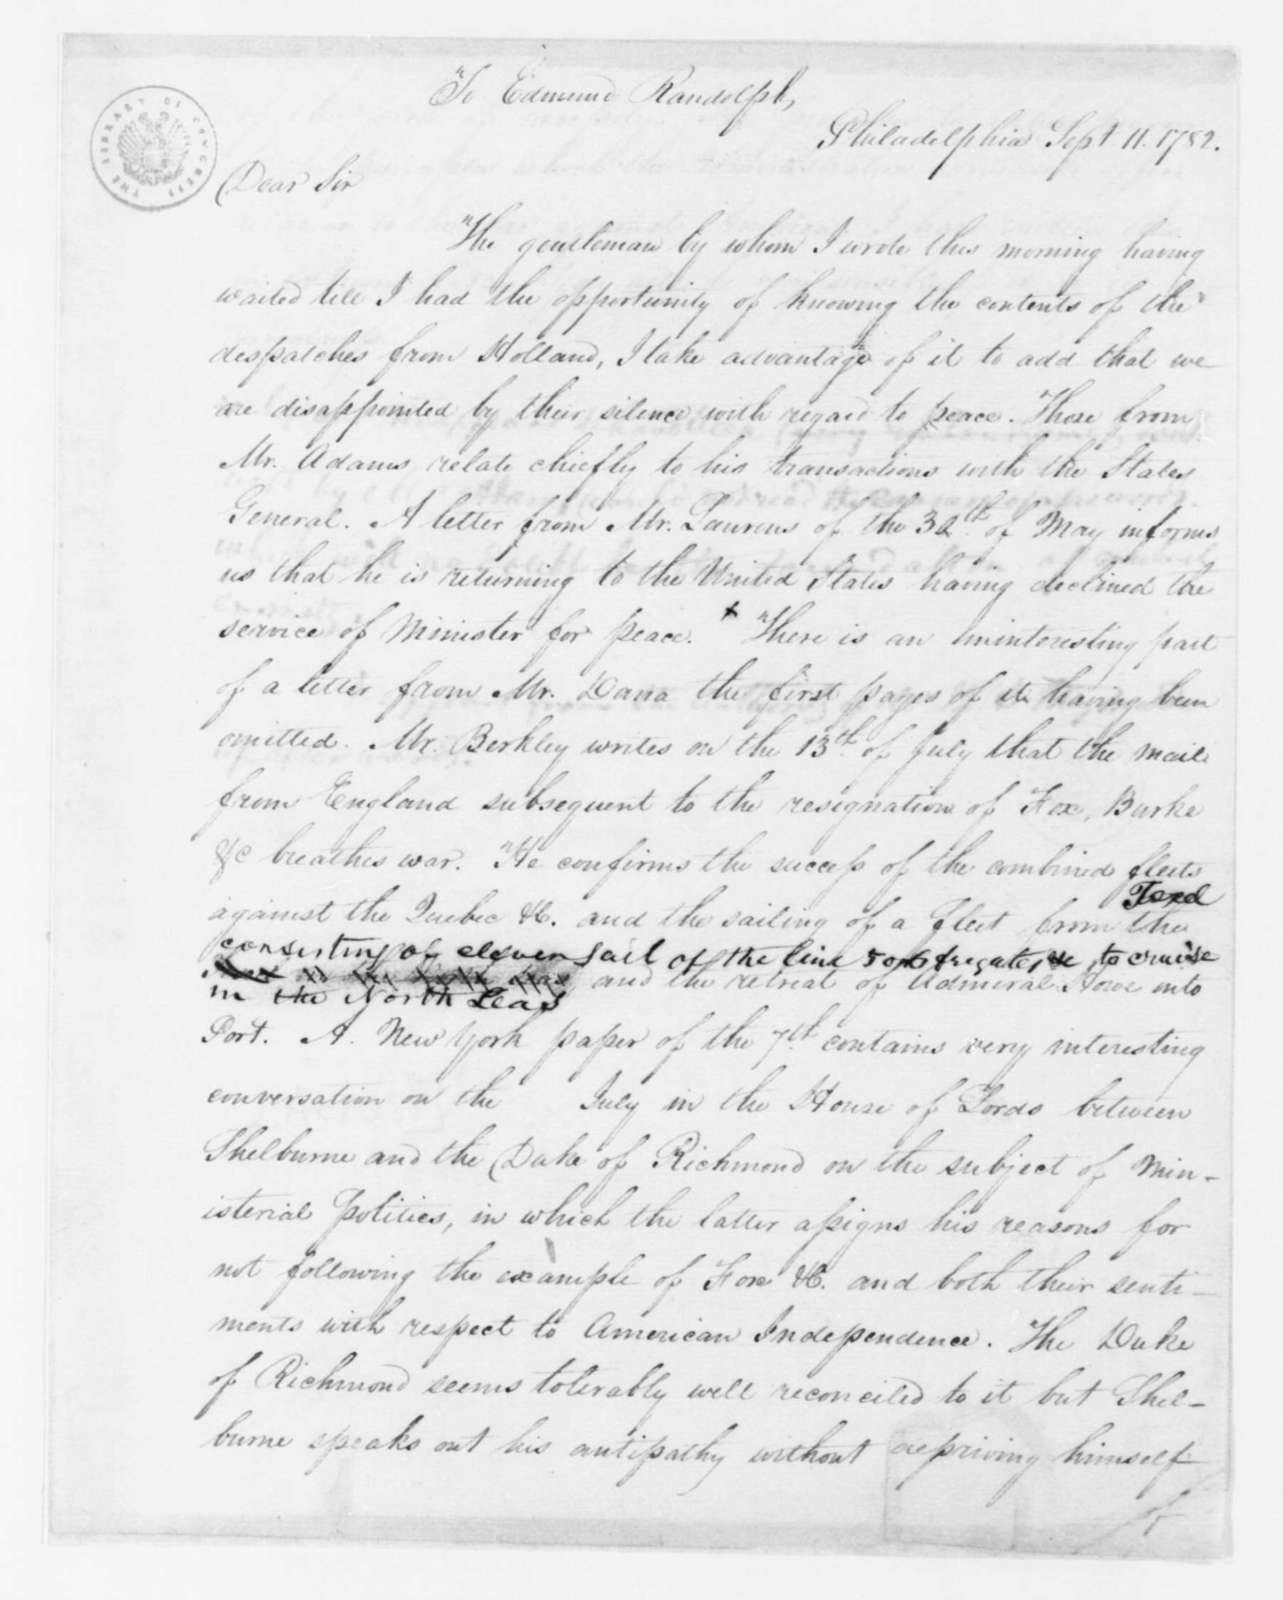 James Madison to Edmund Randolph, September 11, 1782. with copy.